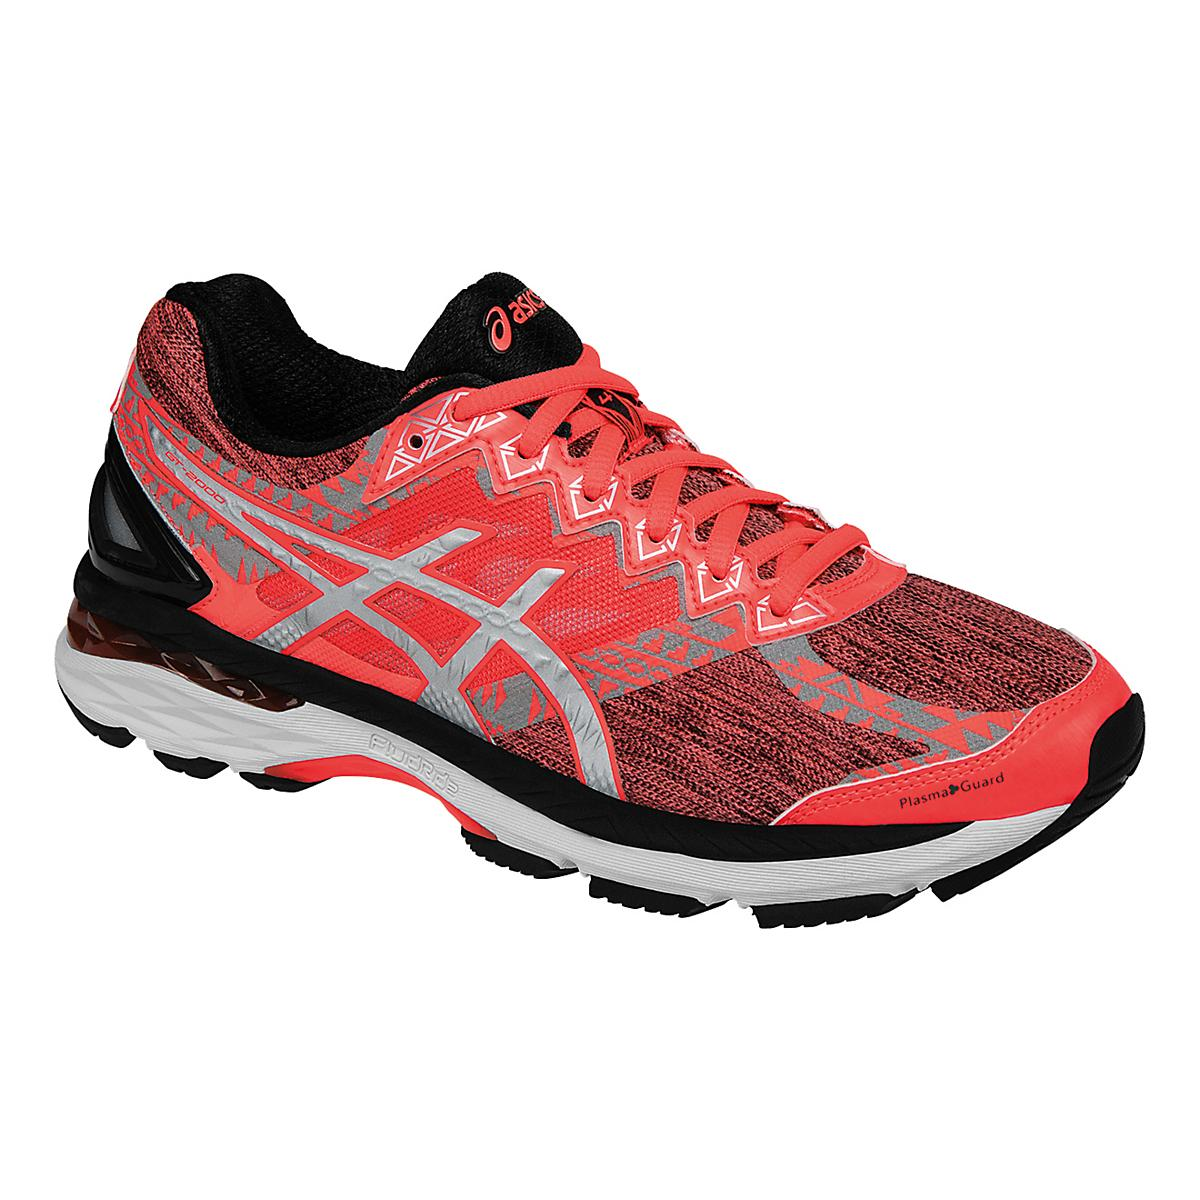 womens asics gt 2000 4 lite show pg running shoe at road runner sports. Black Bedroom Furniture Sets. Home Design Ideas